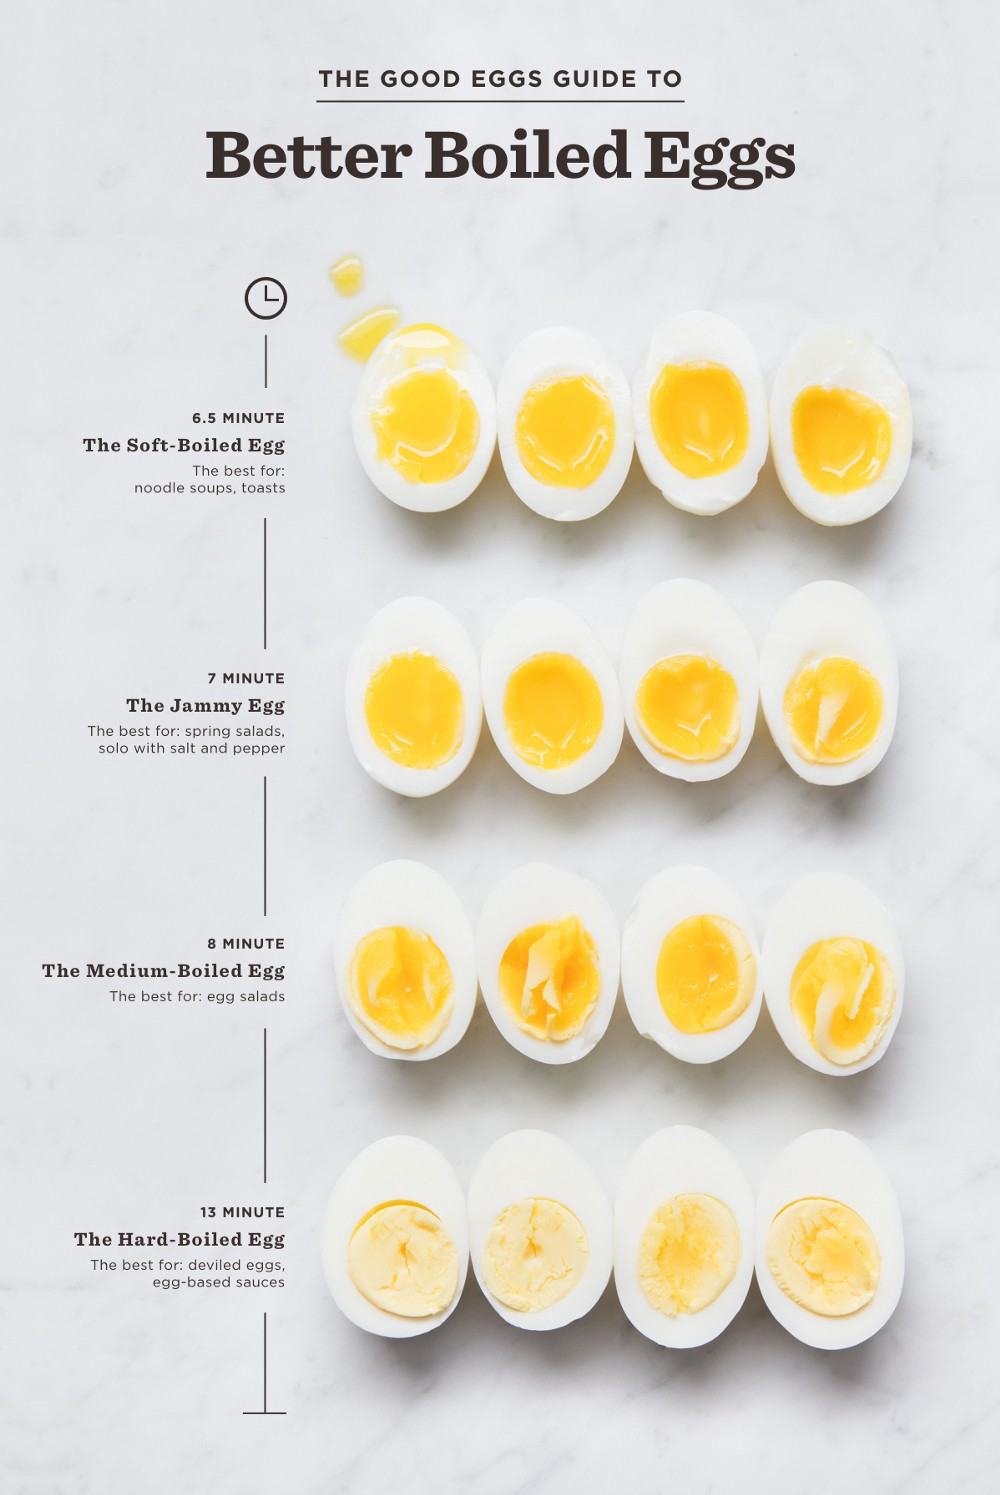 The Good Egg Guide to Better Boiled Eggs